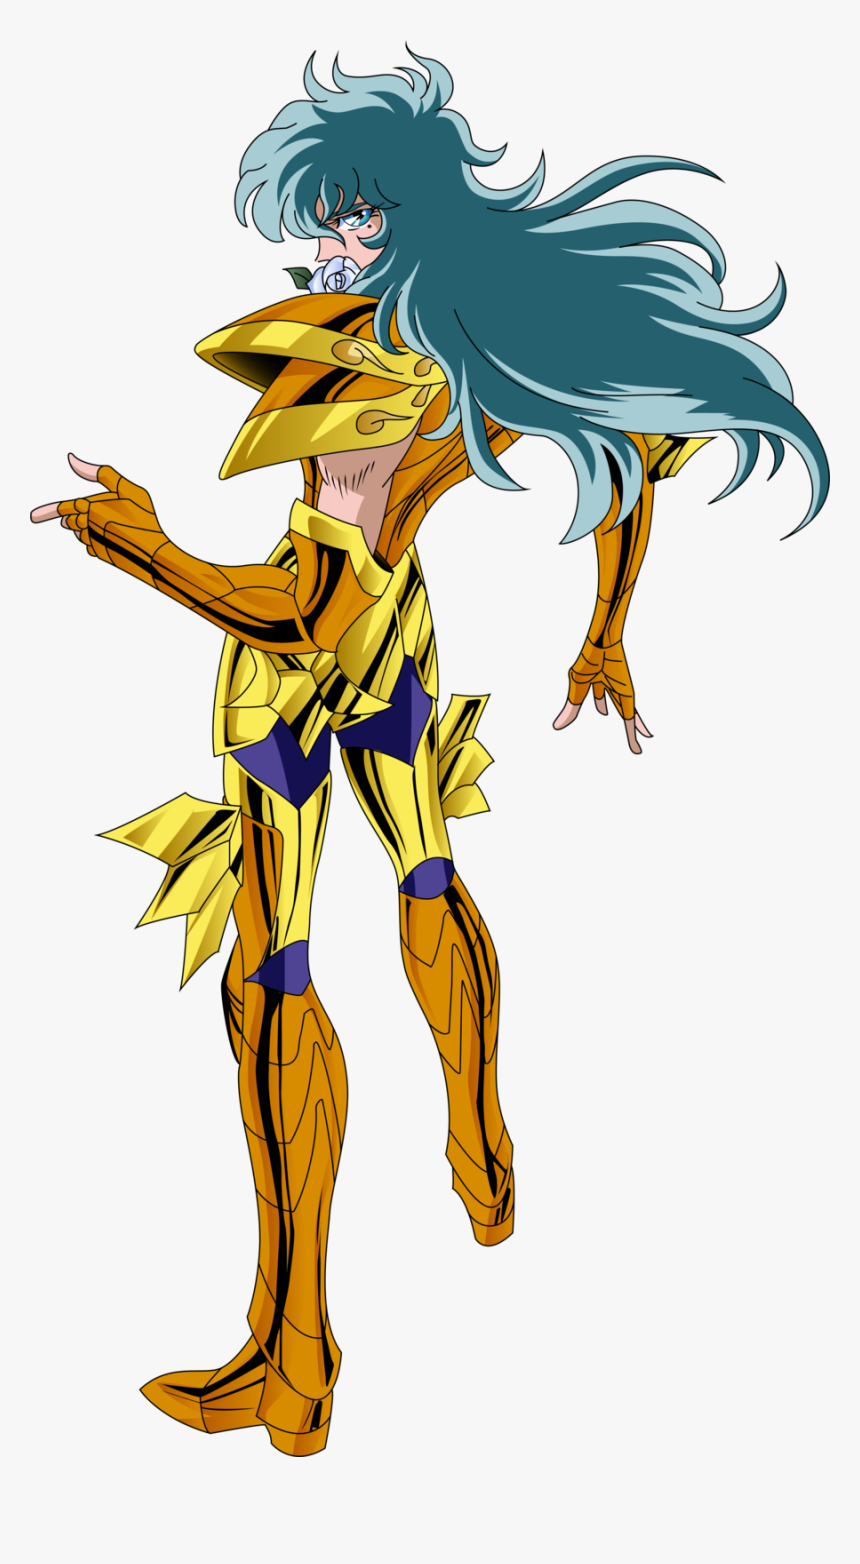 Transparent Caballeros Del Zodiaco Png - Saint Seiya Pisces Aphrodite, Png Download, Free Download